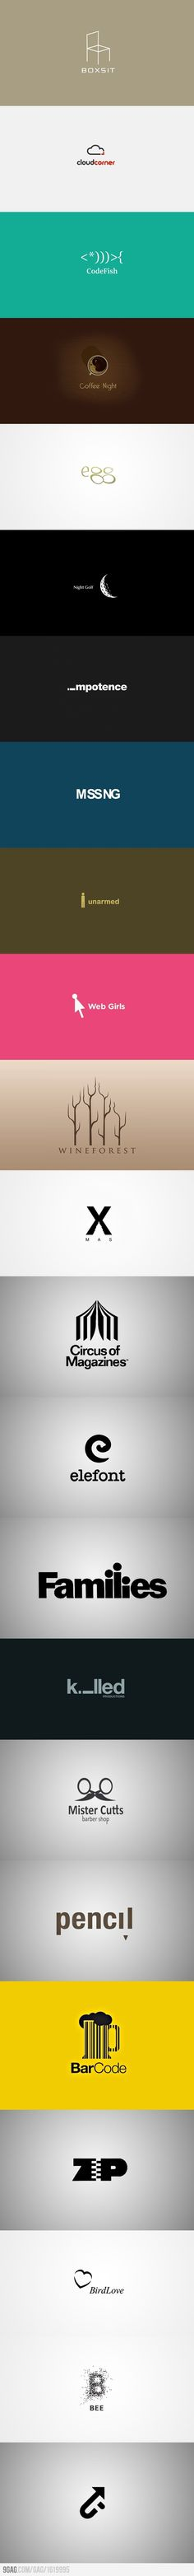 clever logos- it's a twofer. One part company, one part art